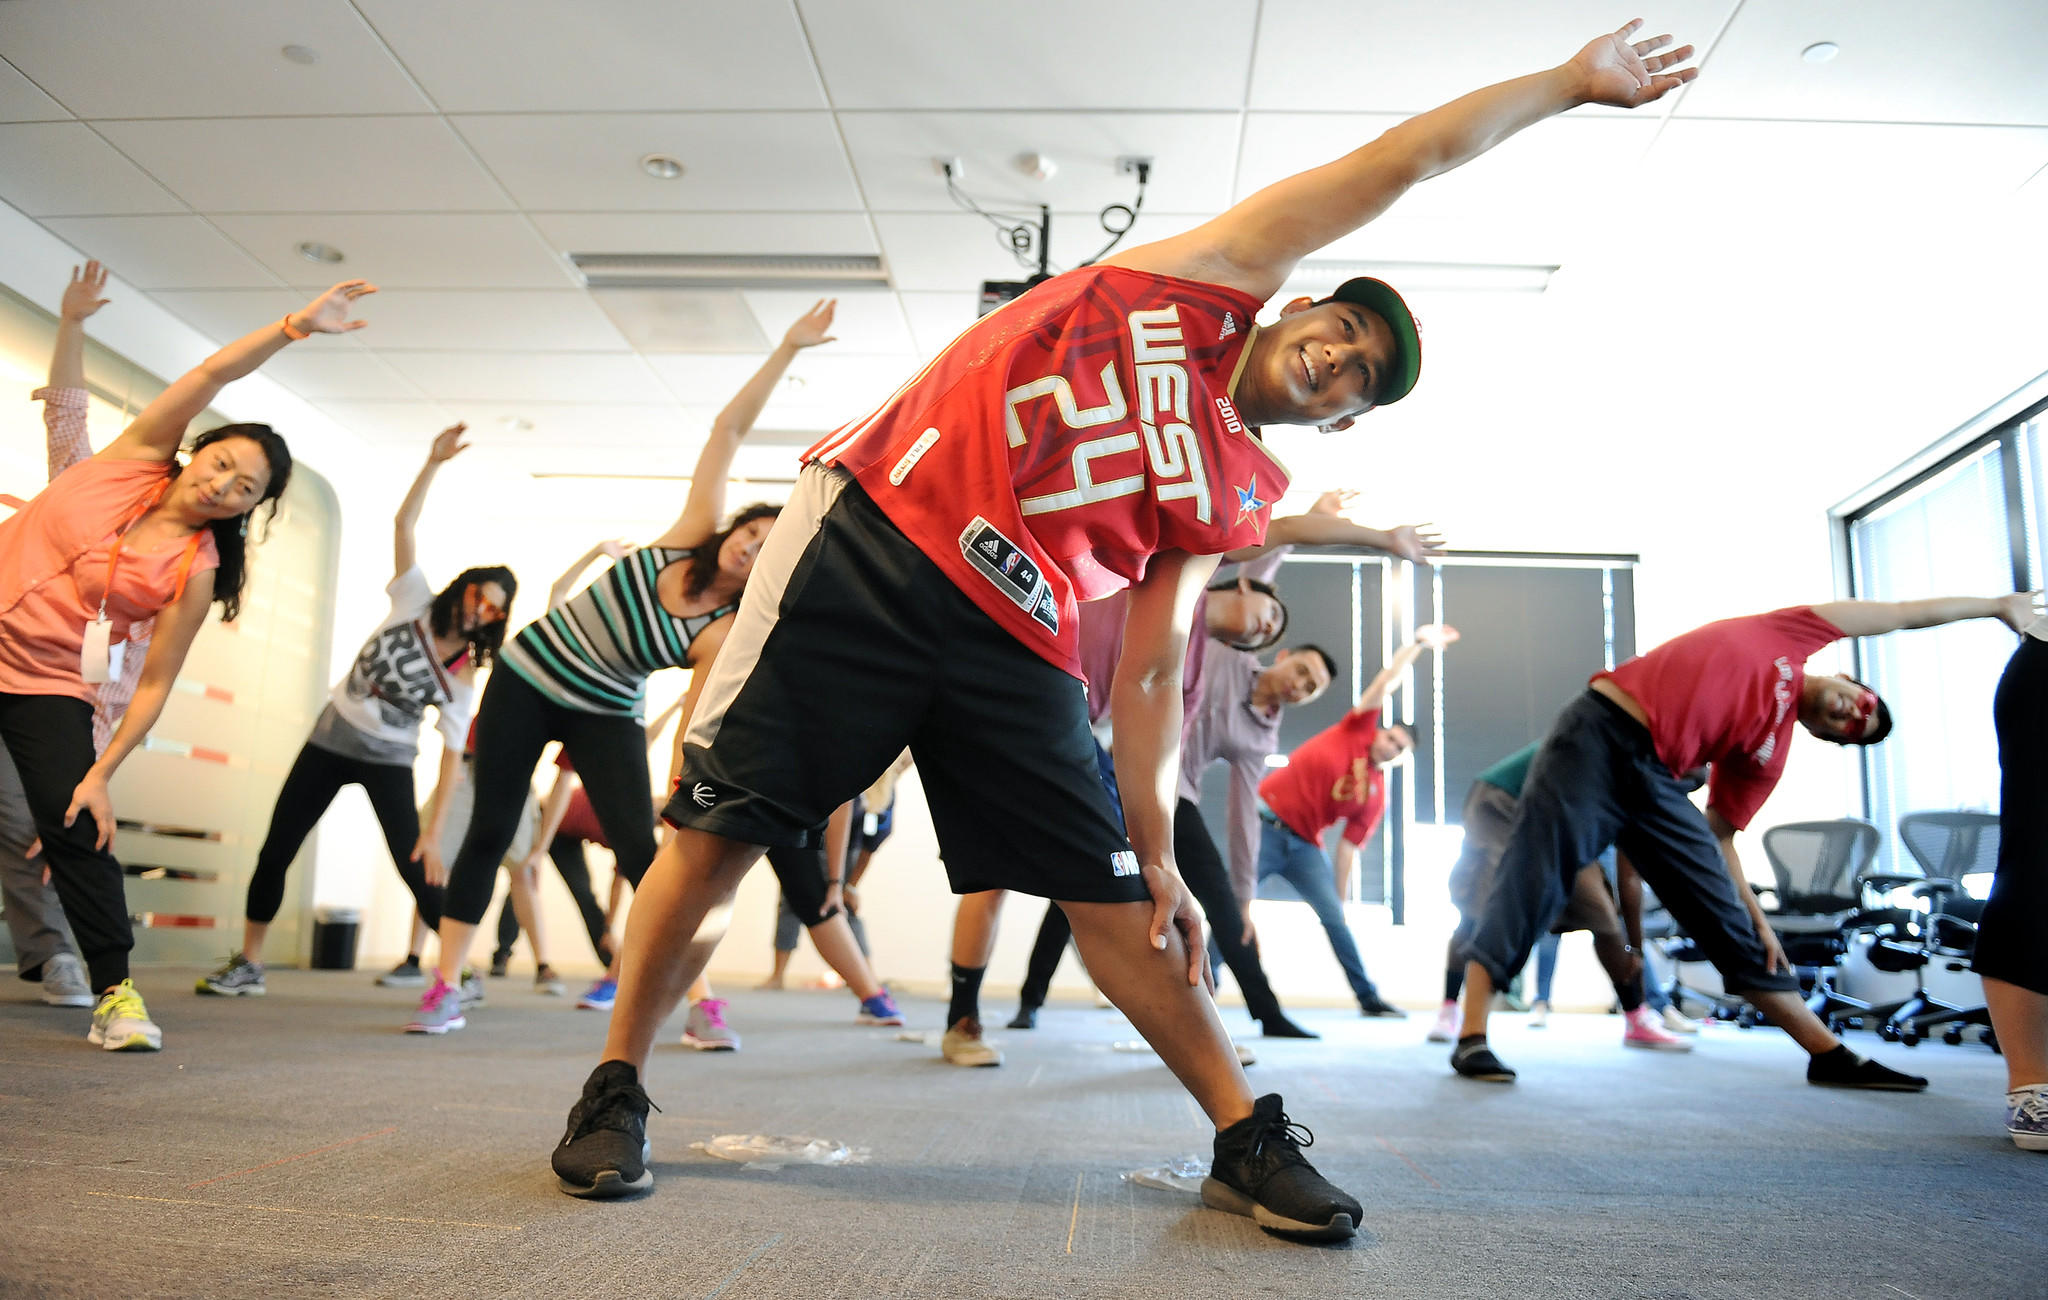 Limzer Lagrimas, center, teaches a hip hop dance class to fellow Edmunds.com employees during the company's